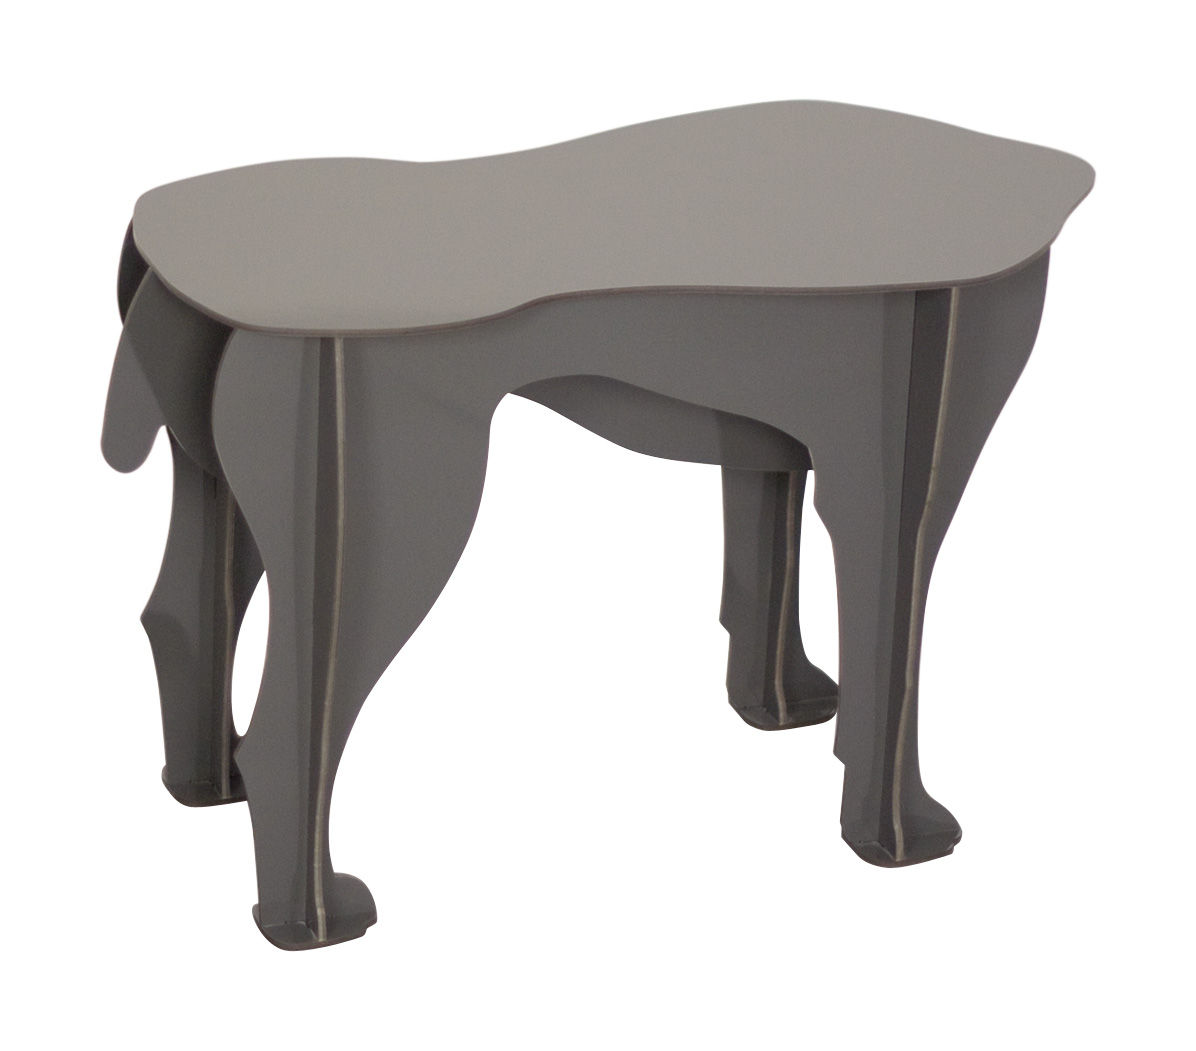 Sultan Stool Coffee Table Anthracite Grey By Ibride